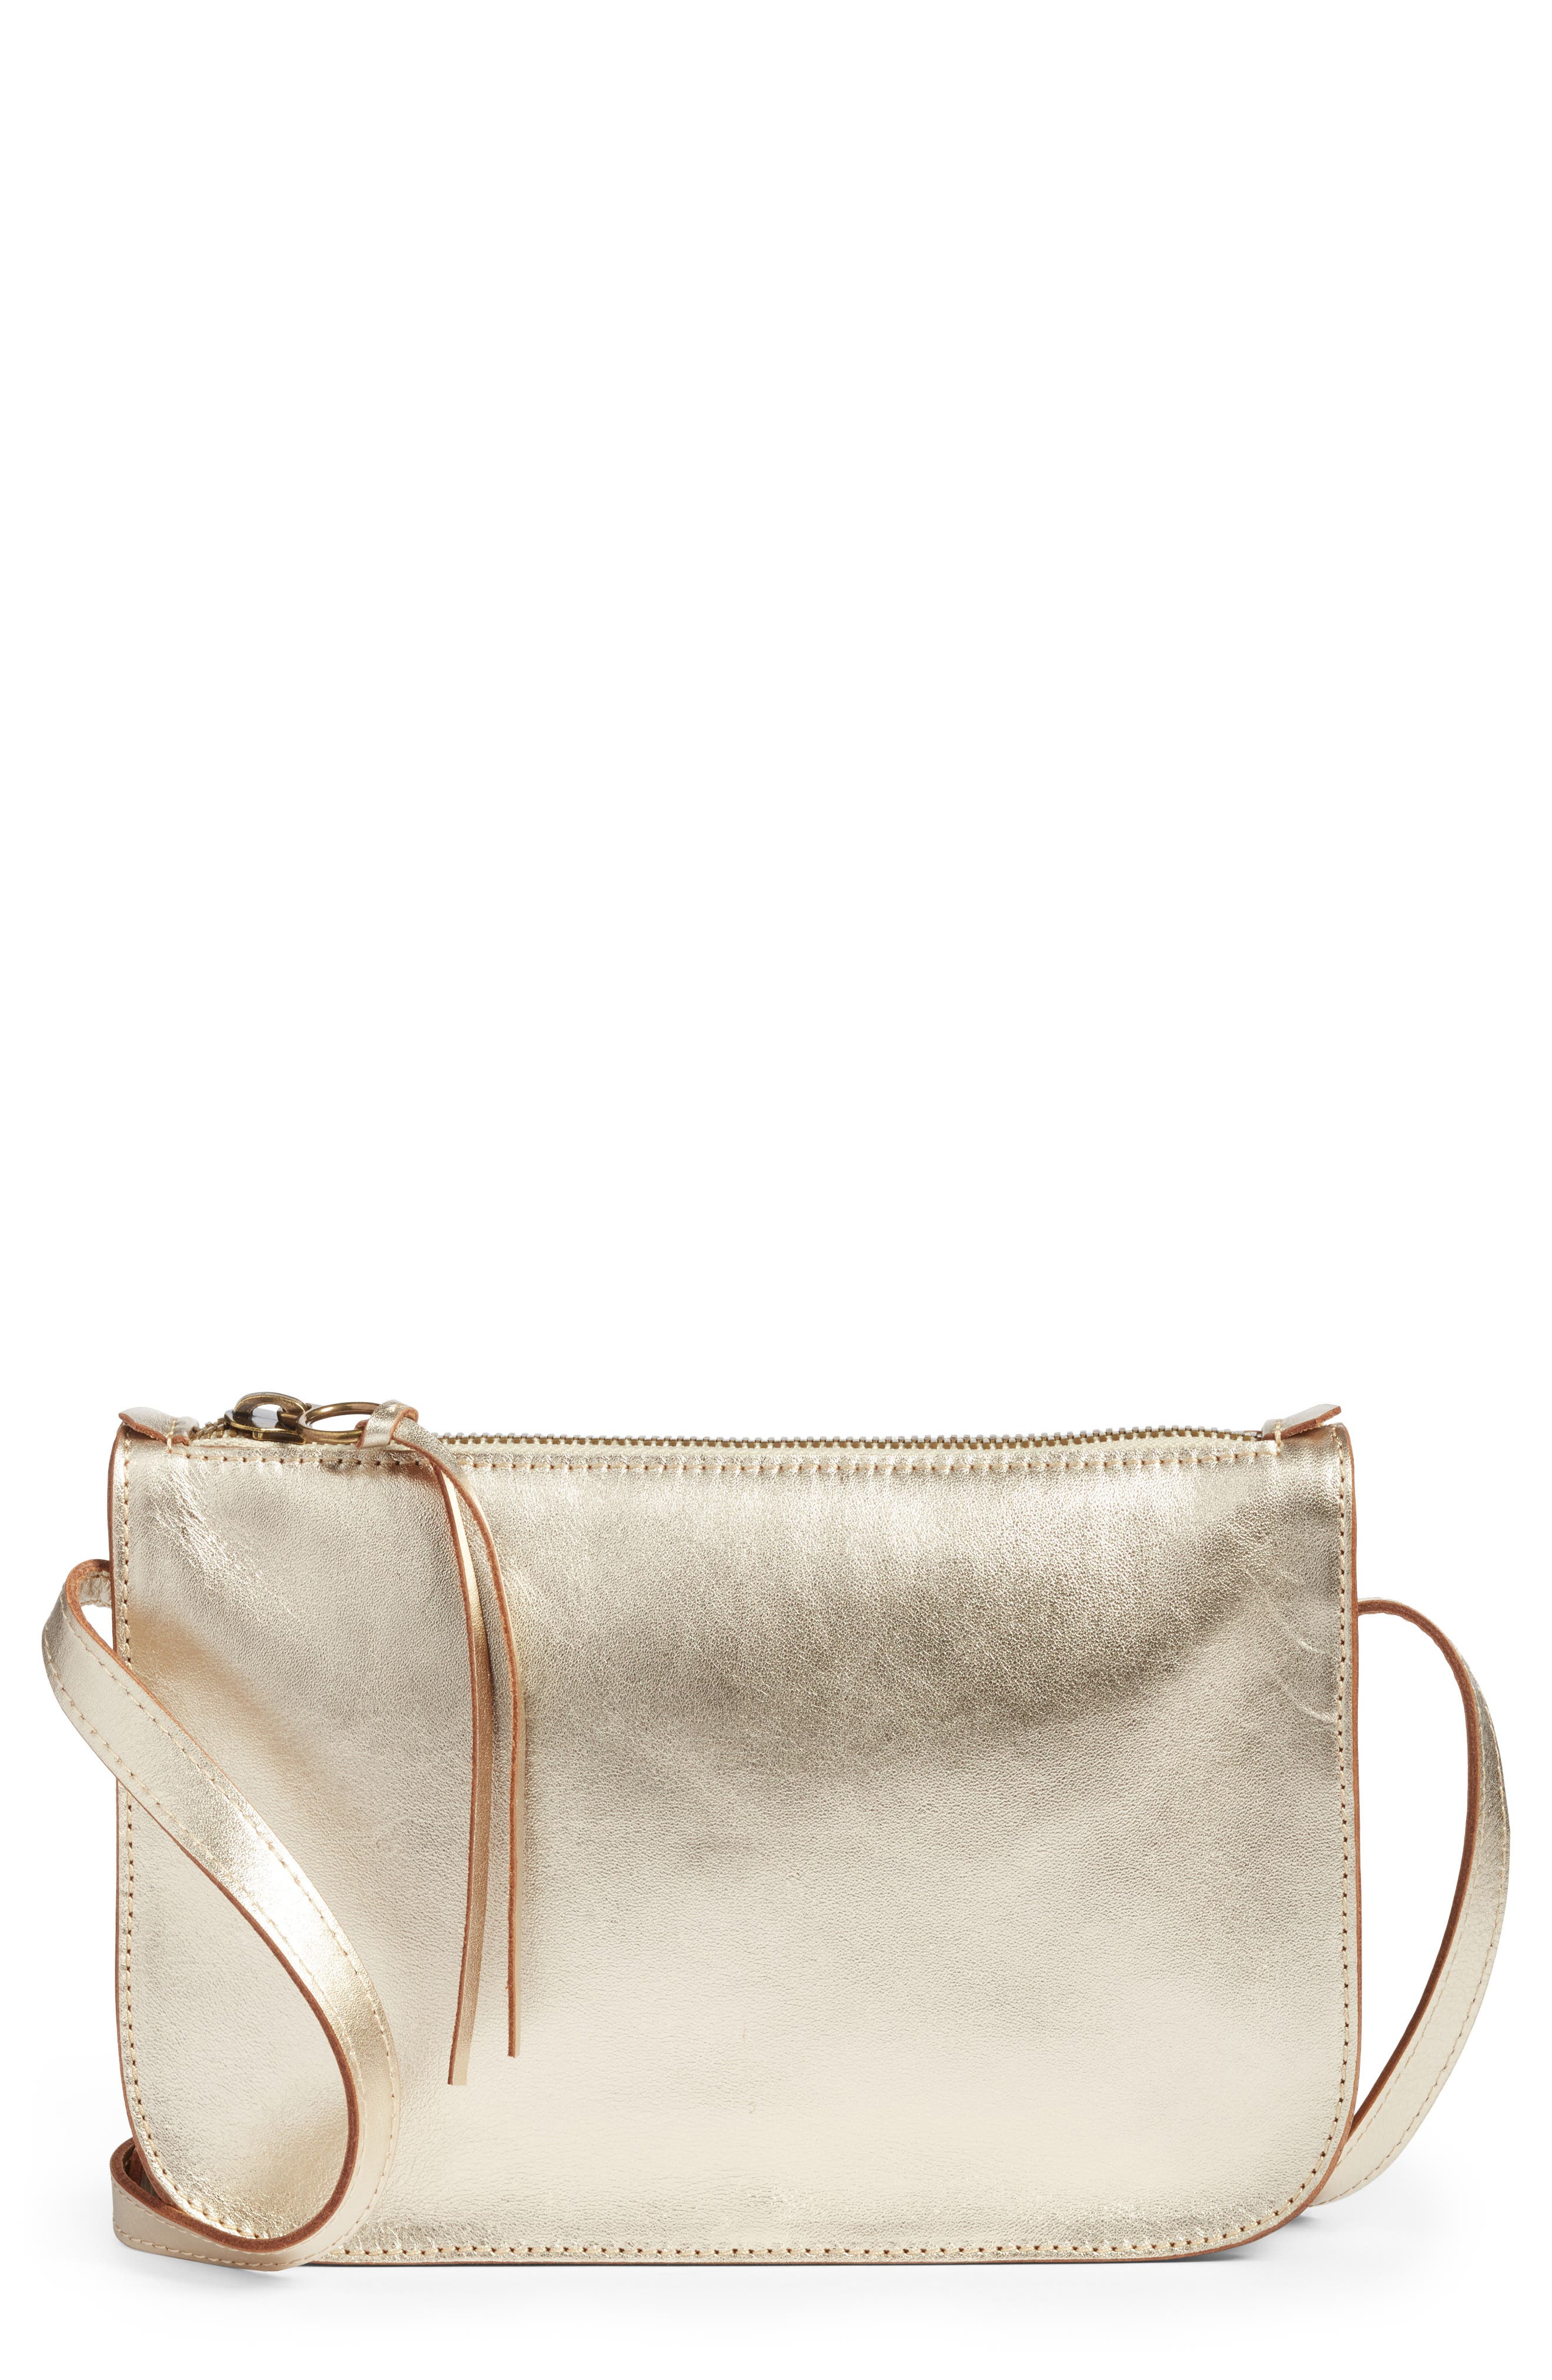 Alternate Image 1 Selected - Madewell Leather Crossbody Bag